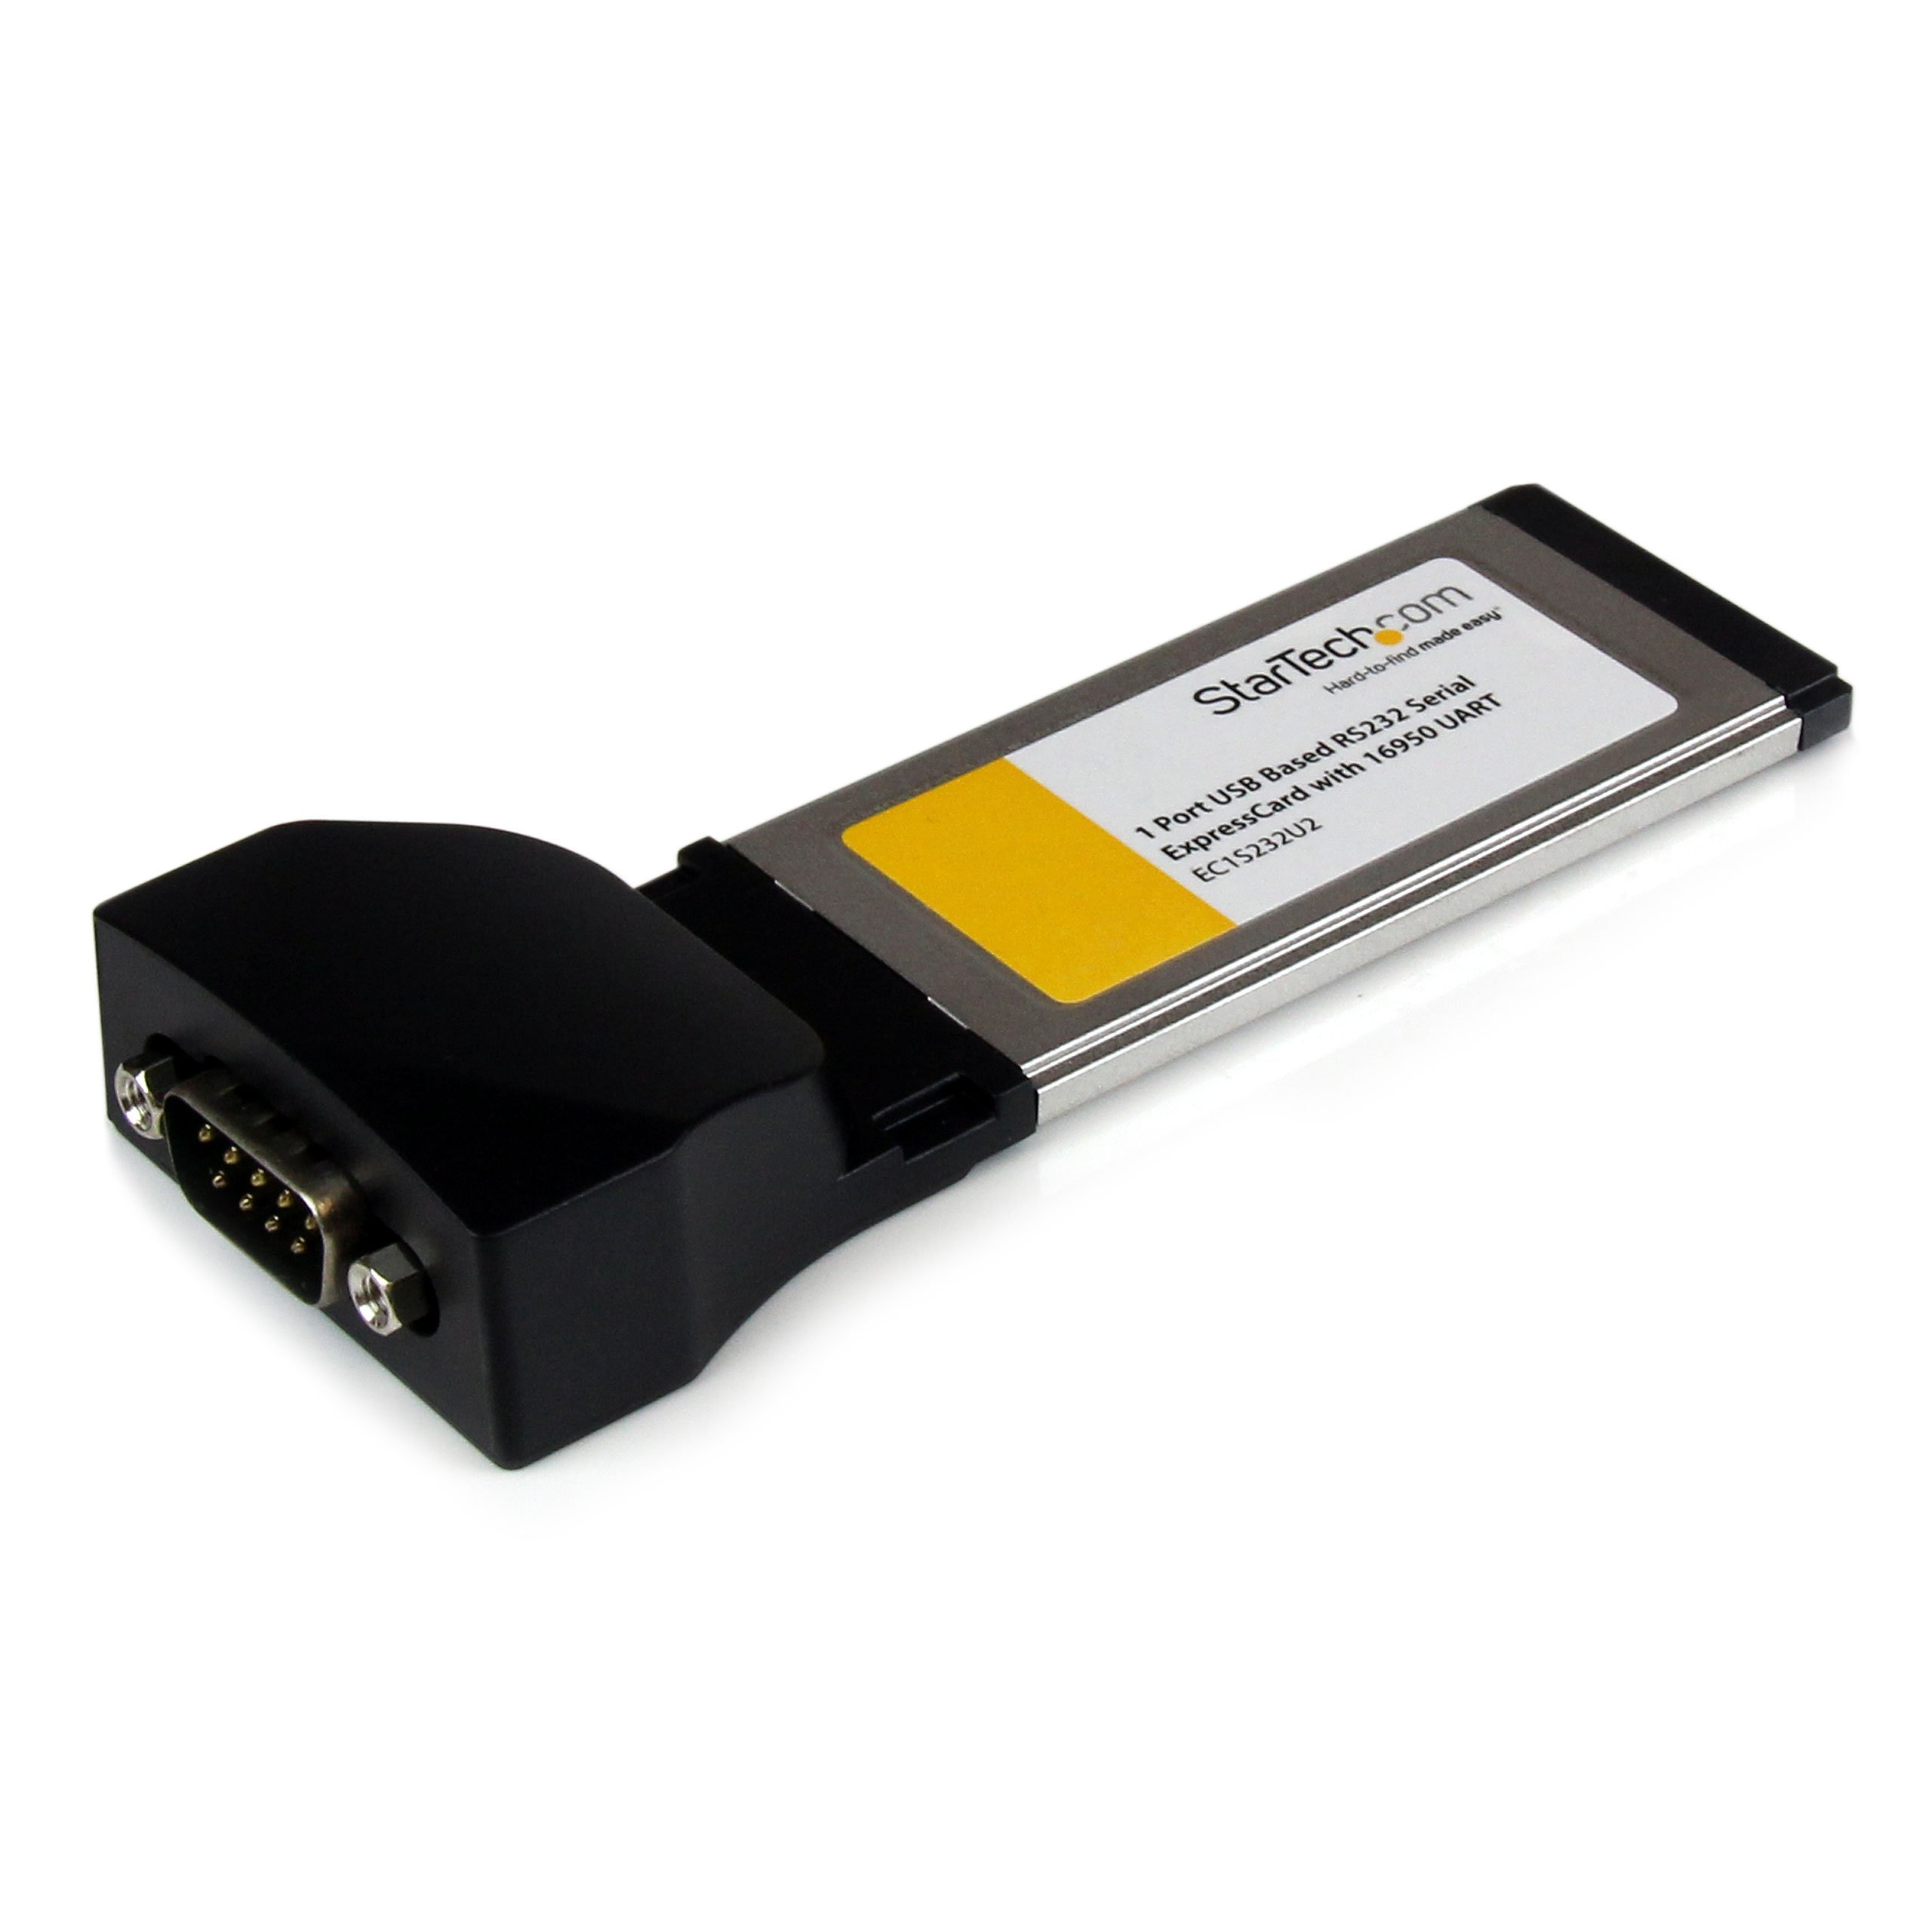 StarTech.com 1 Port ExpressCard to RS232 DB9 Serial Adapter Card w/ 16950 - USB Based (EC1S232U2) by StarTech